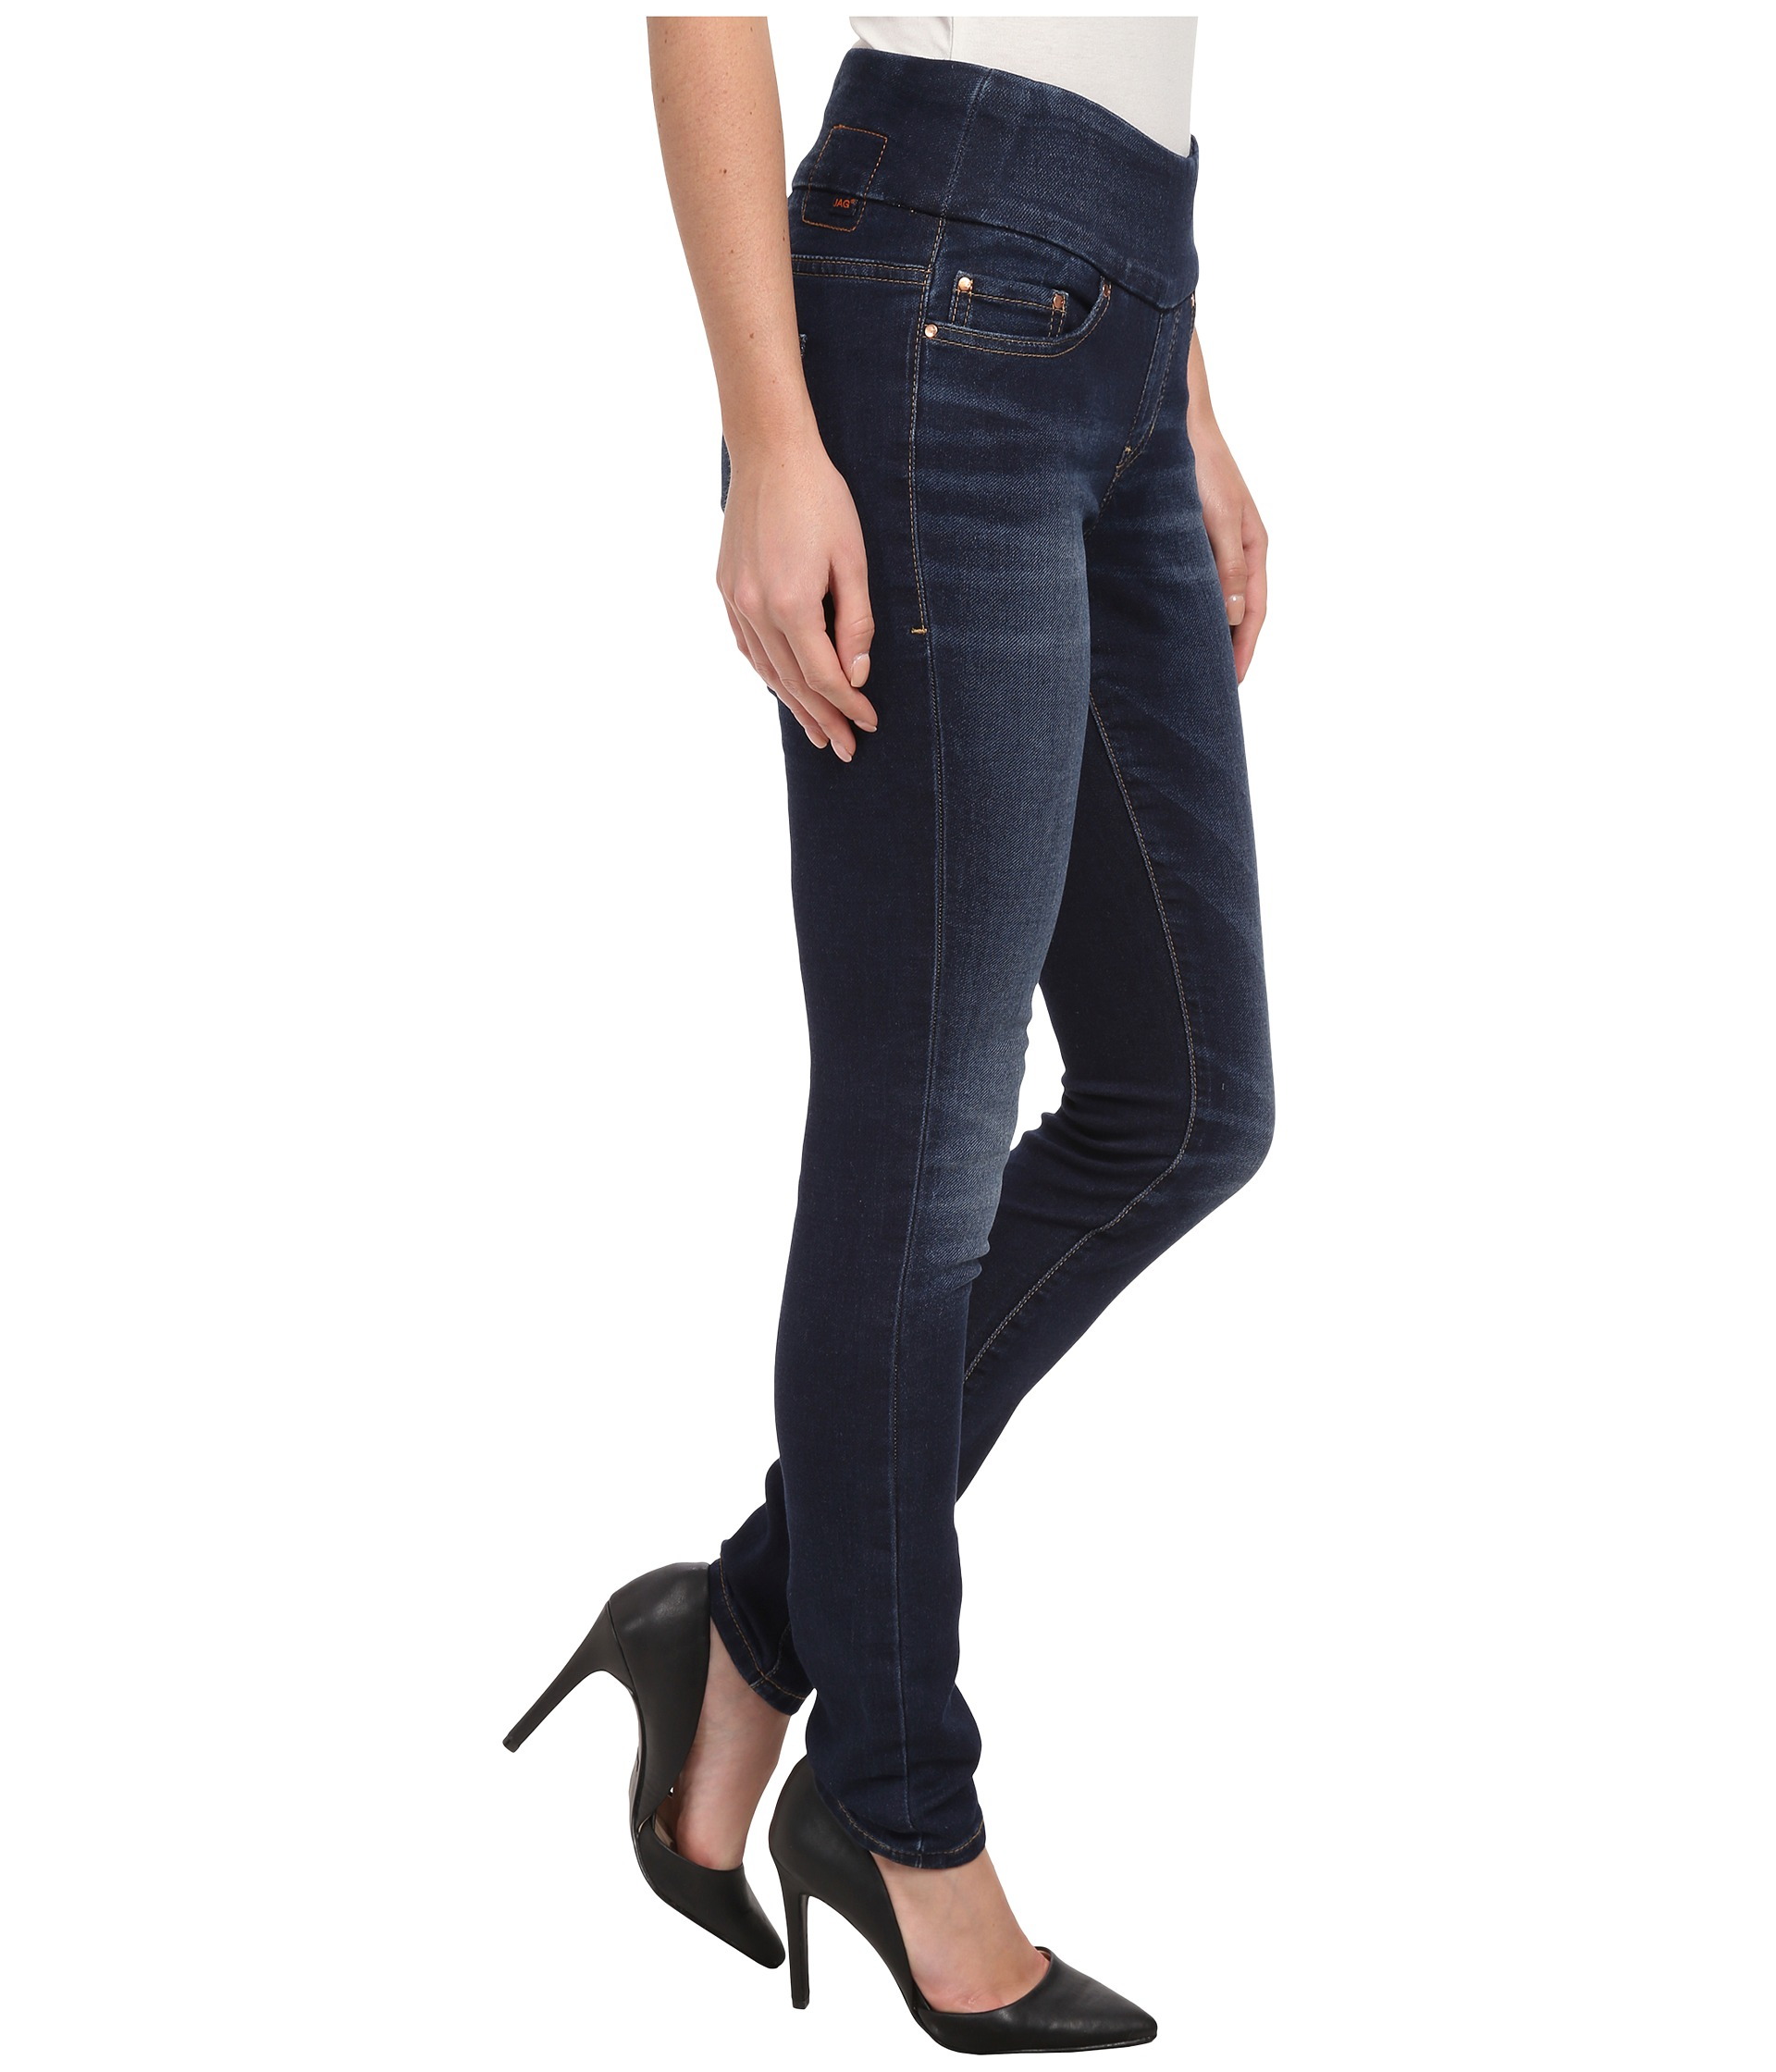 Jag Jeans Nora Pull-On Skinny Knit Denim in Blue Ridge at Zappos.com